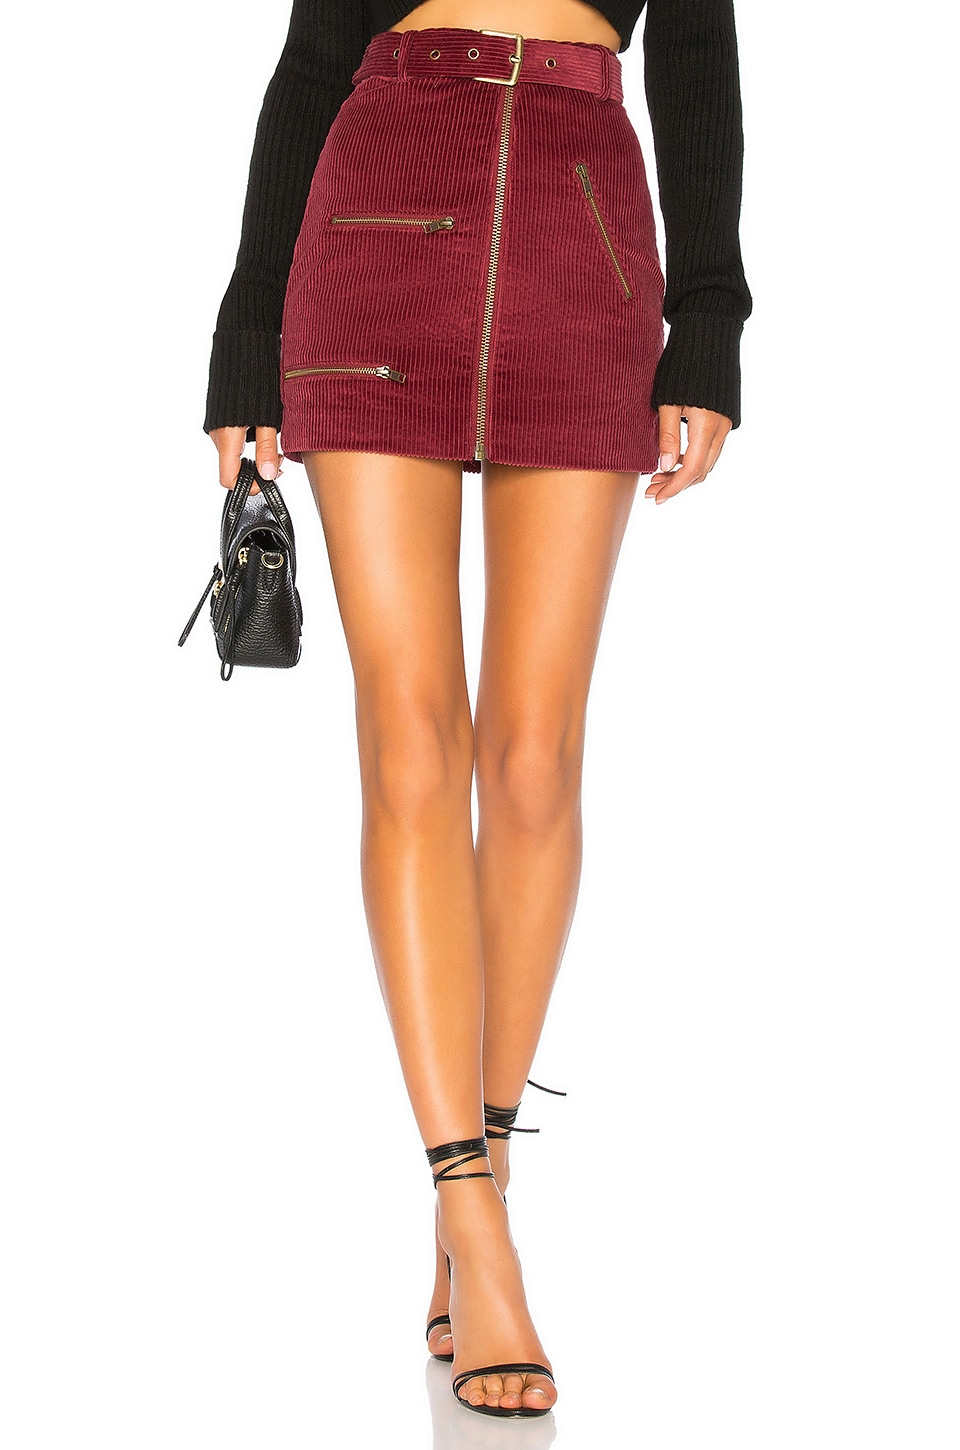 House of Harlow 1960 x REVOLVE Tori Skirt in Berry Red